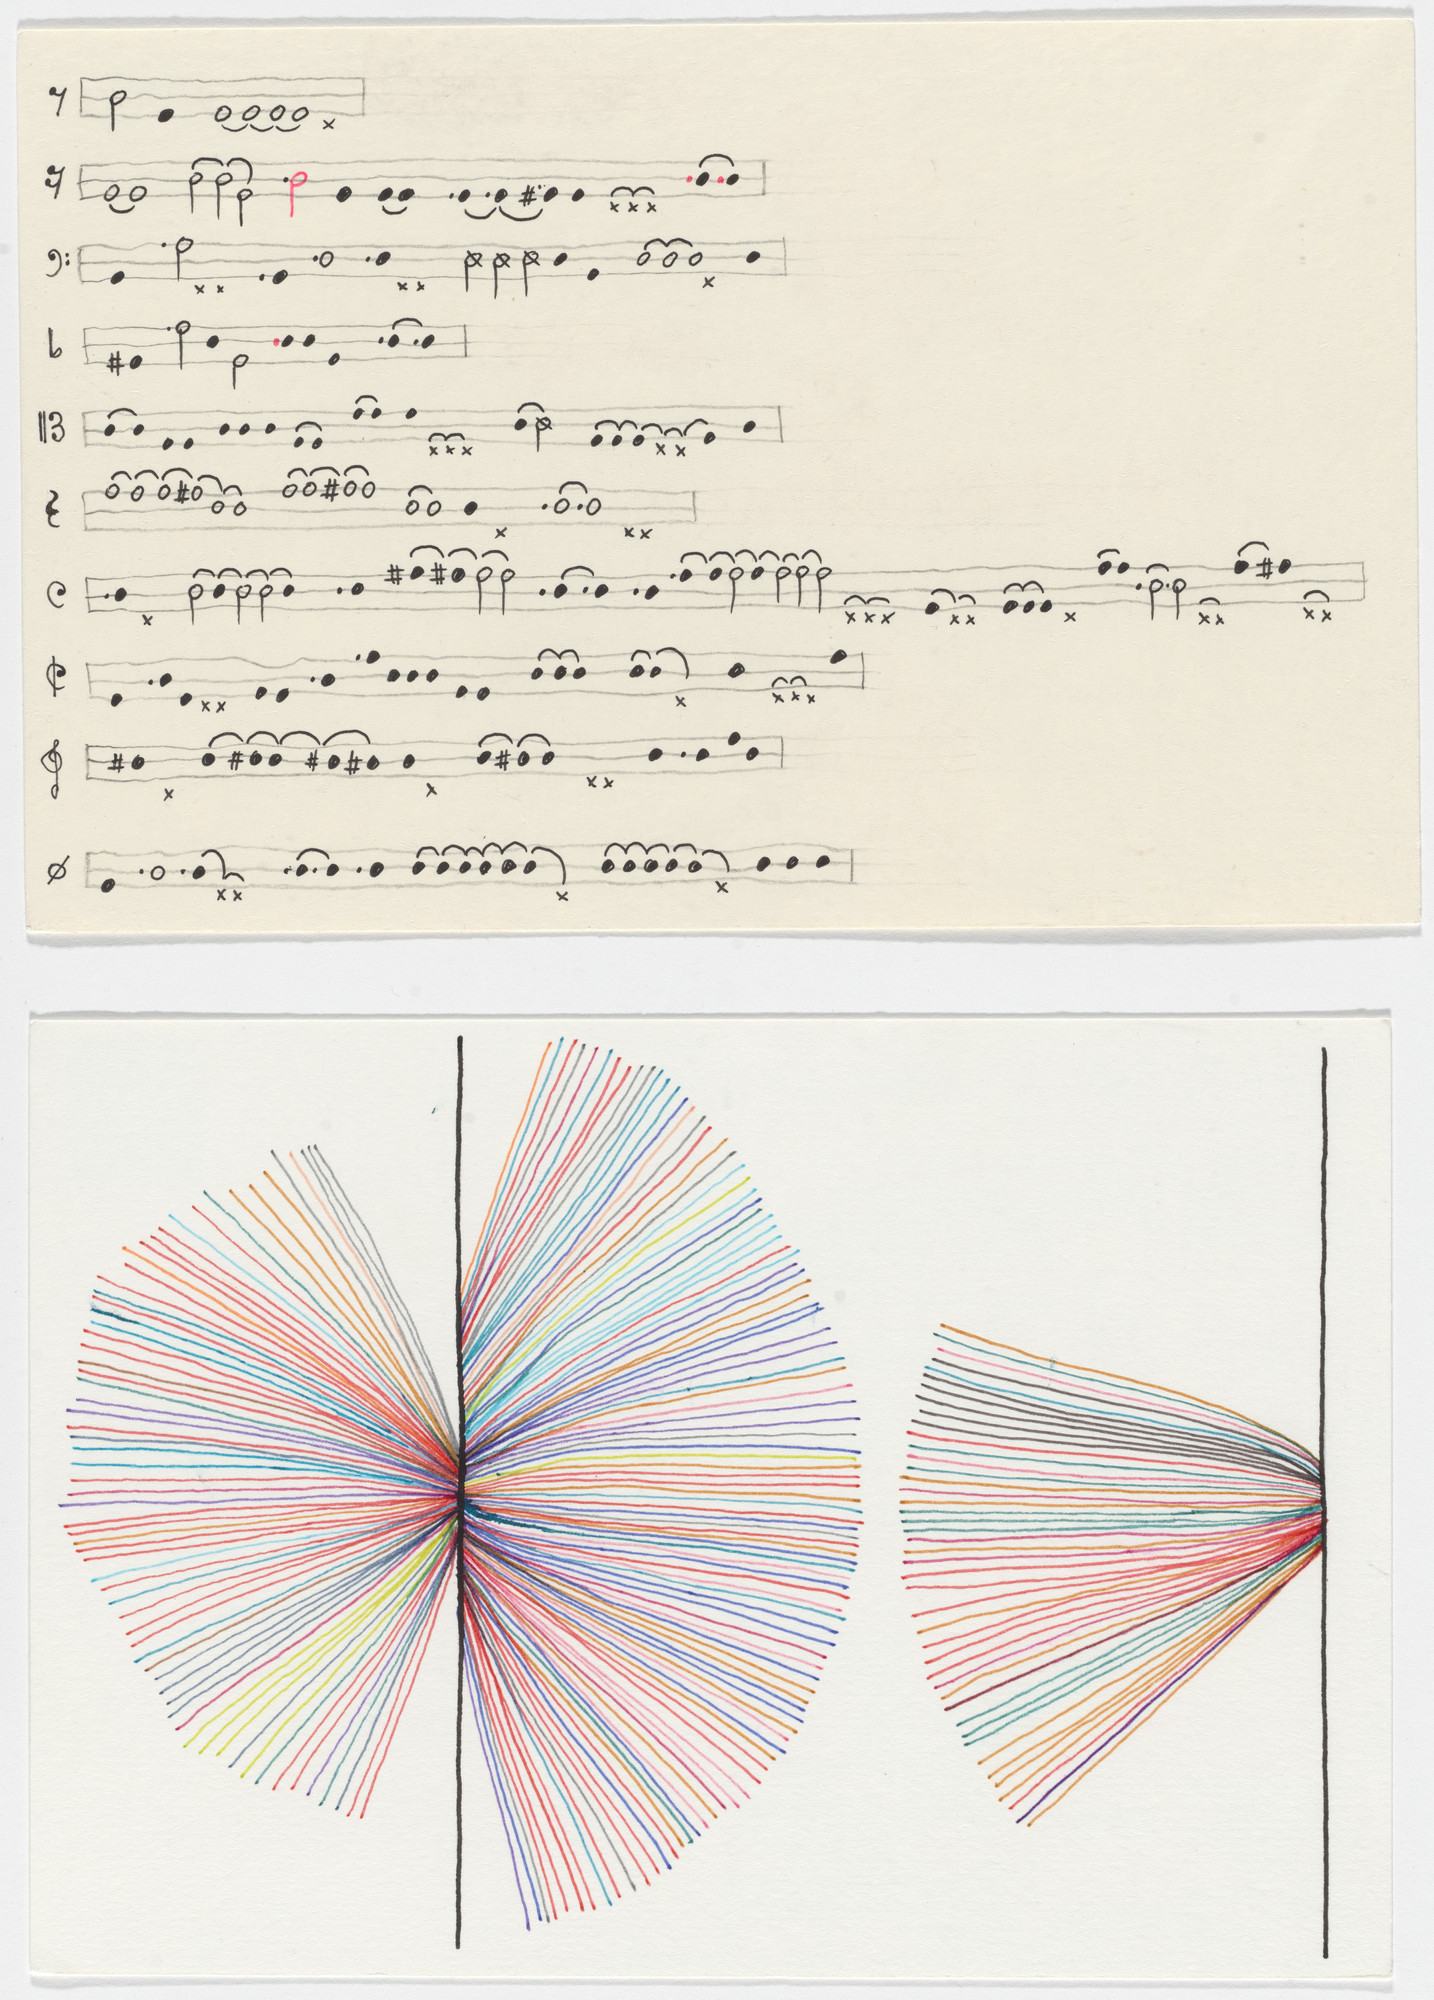 Giorgia Lupi, Stefanie Posavec. Dear Data: Week 7 (Musical Complaints / A Week of Complaints). 2014